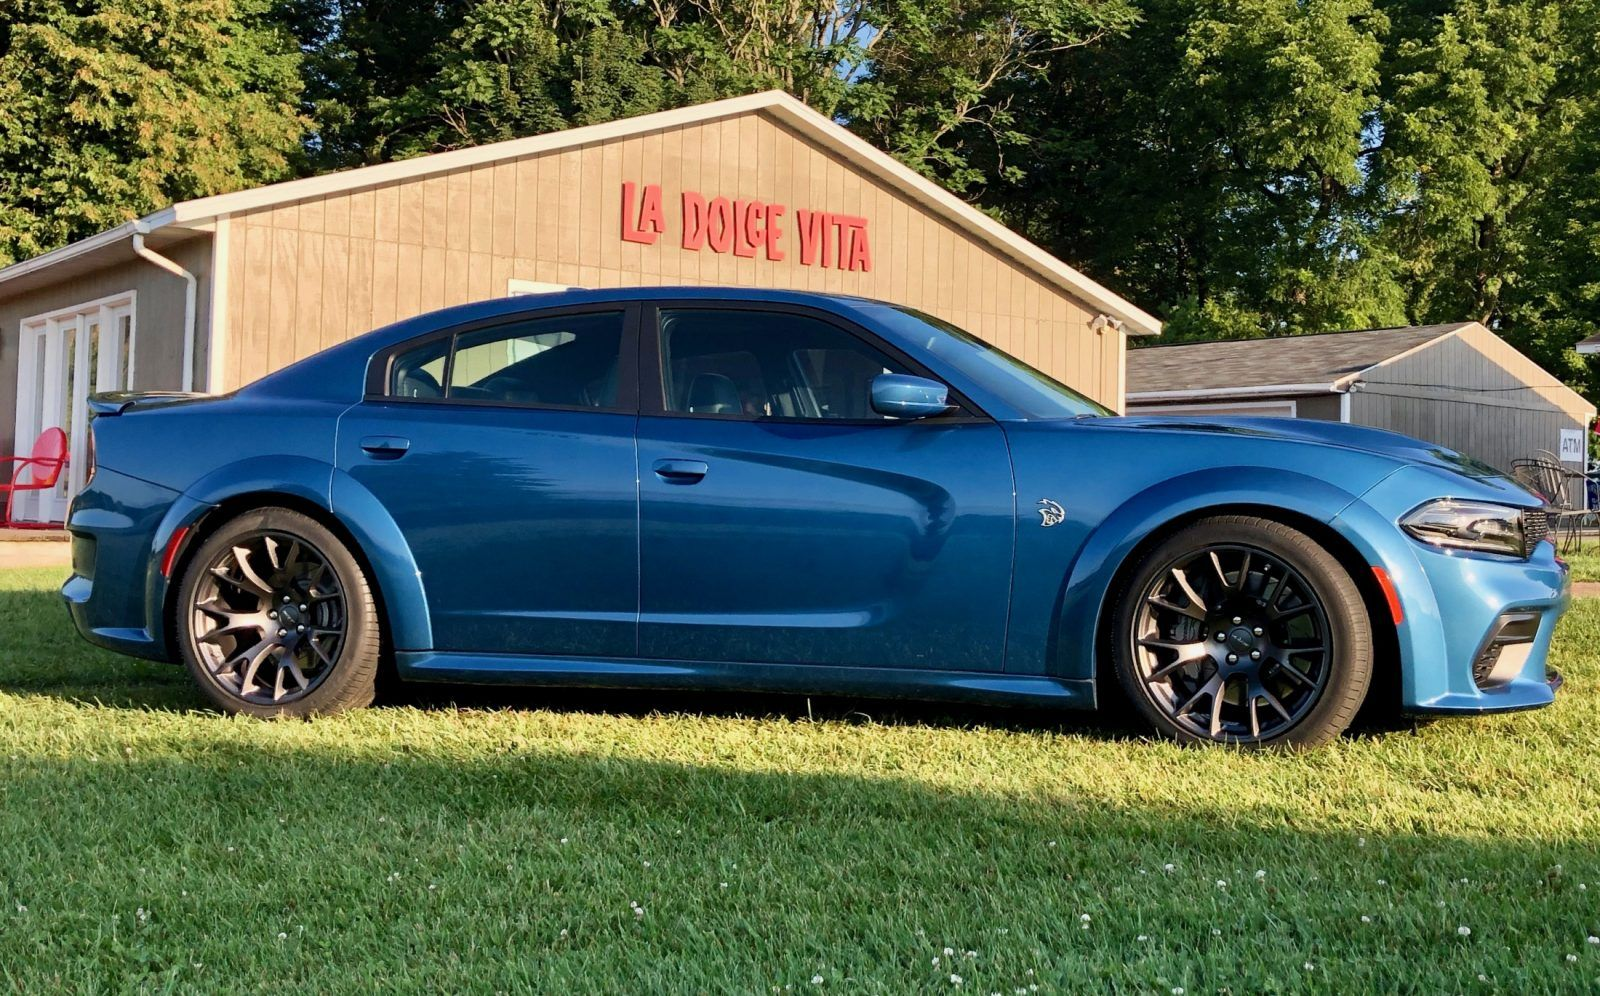 2020 Dodge Charger Hellcat Widebody Family Cars Car Revs Daily Com Dodge Charger Hellcat Dodge Charger Hellcat